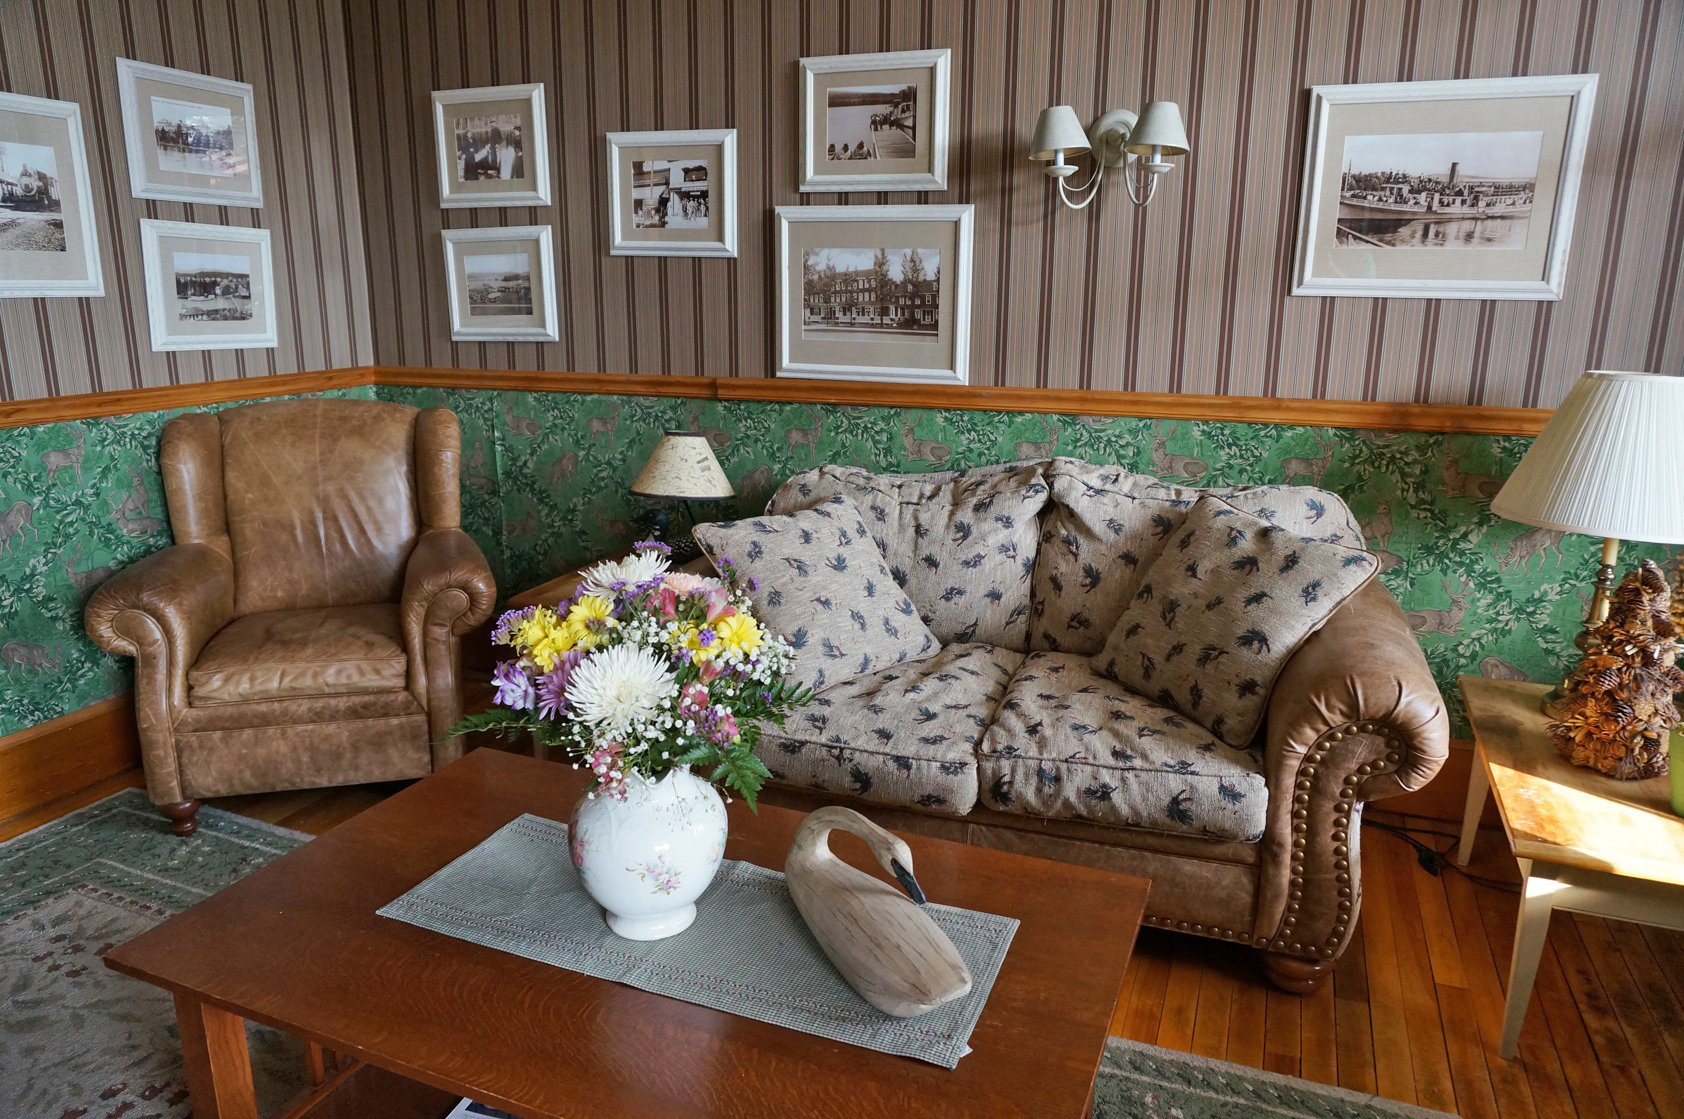 Step back in time and relax in our inviting atmosphere.